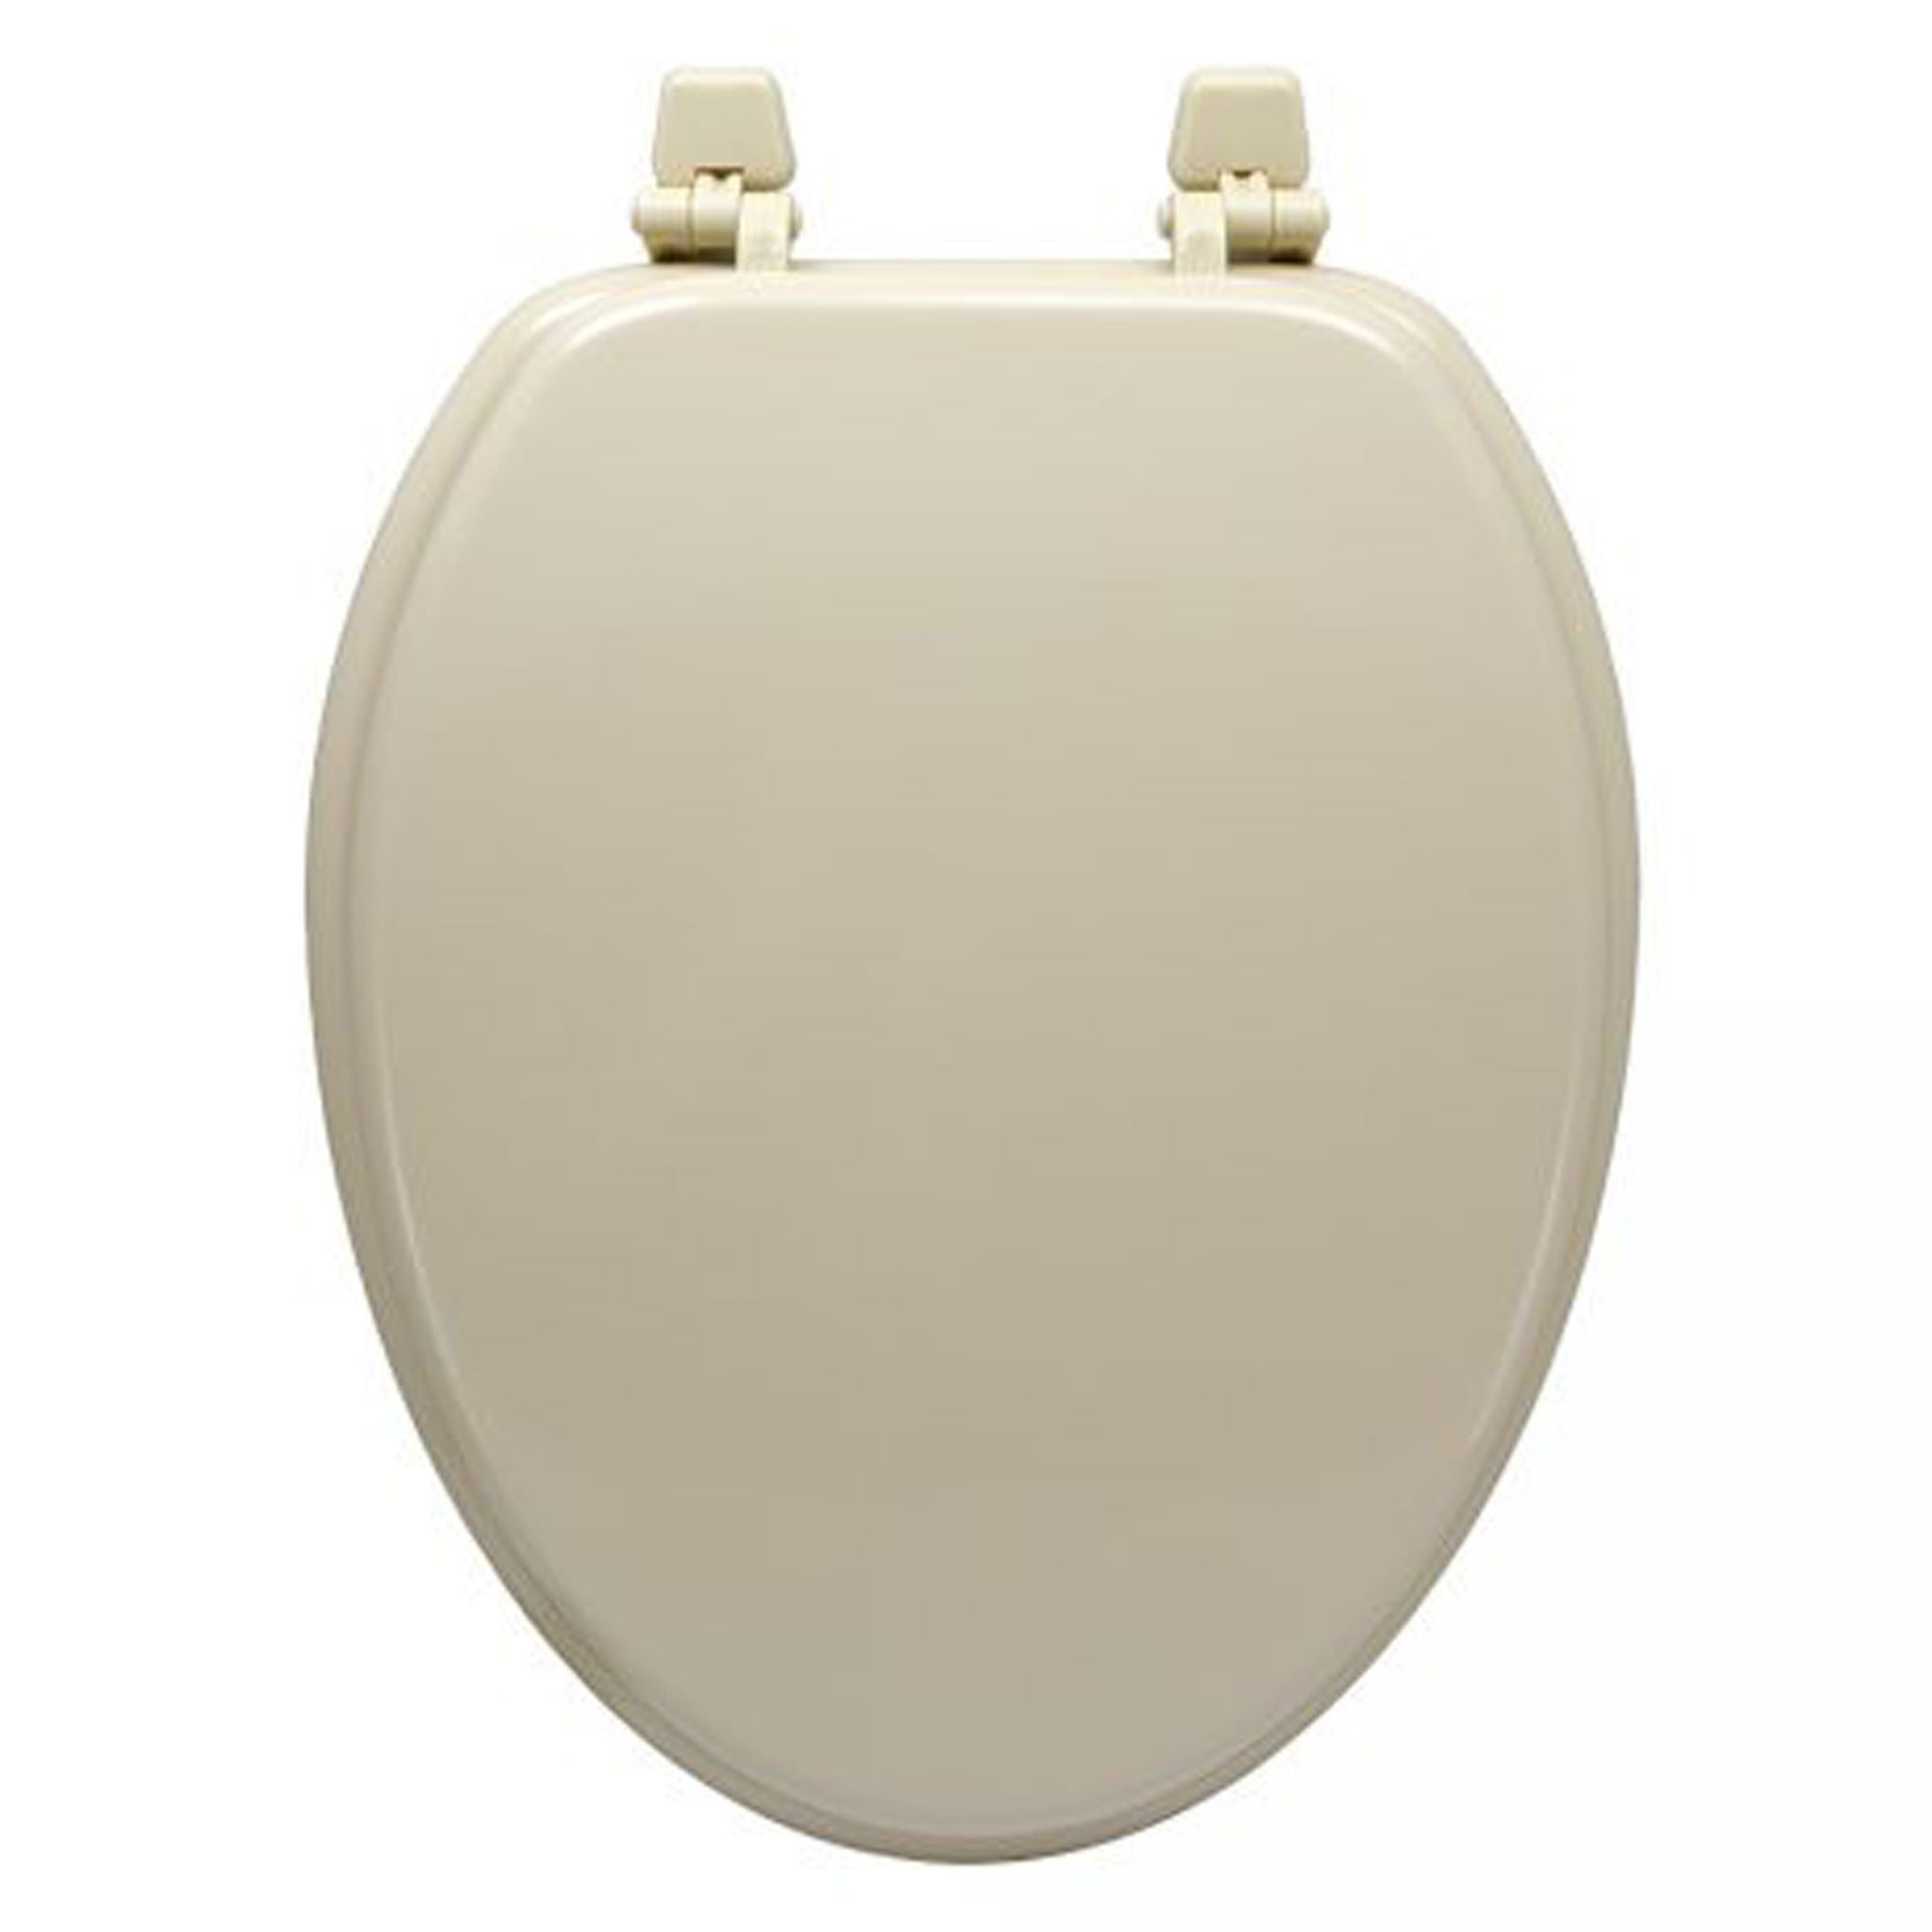 Elongated Bone Toilet Seat